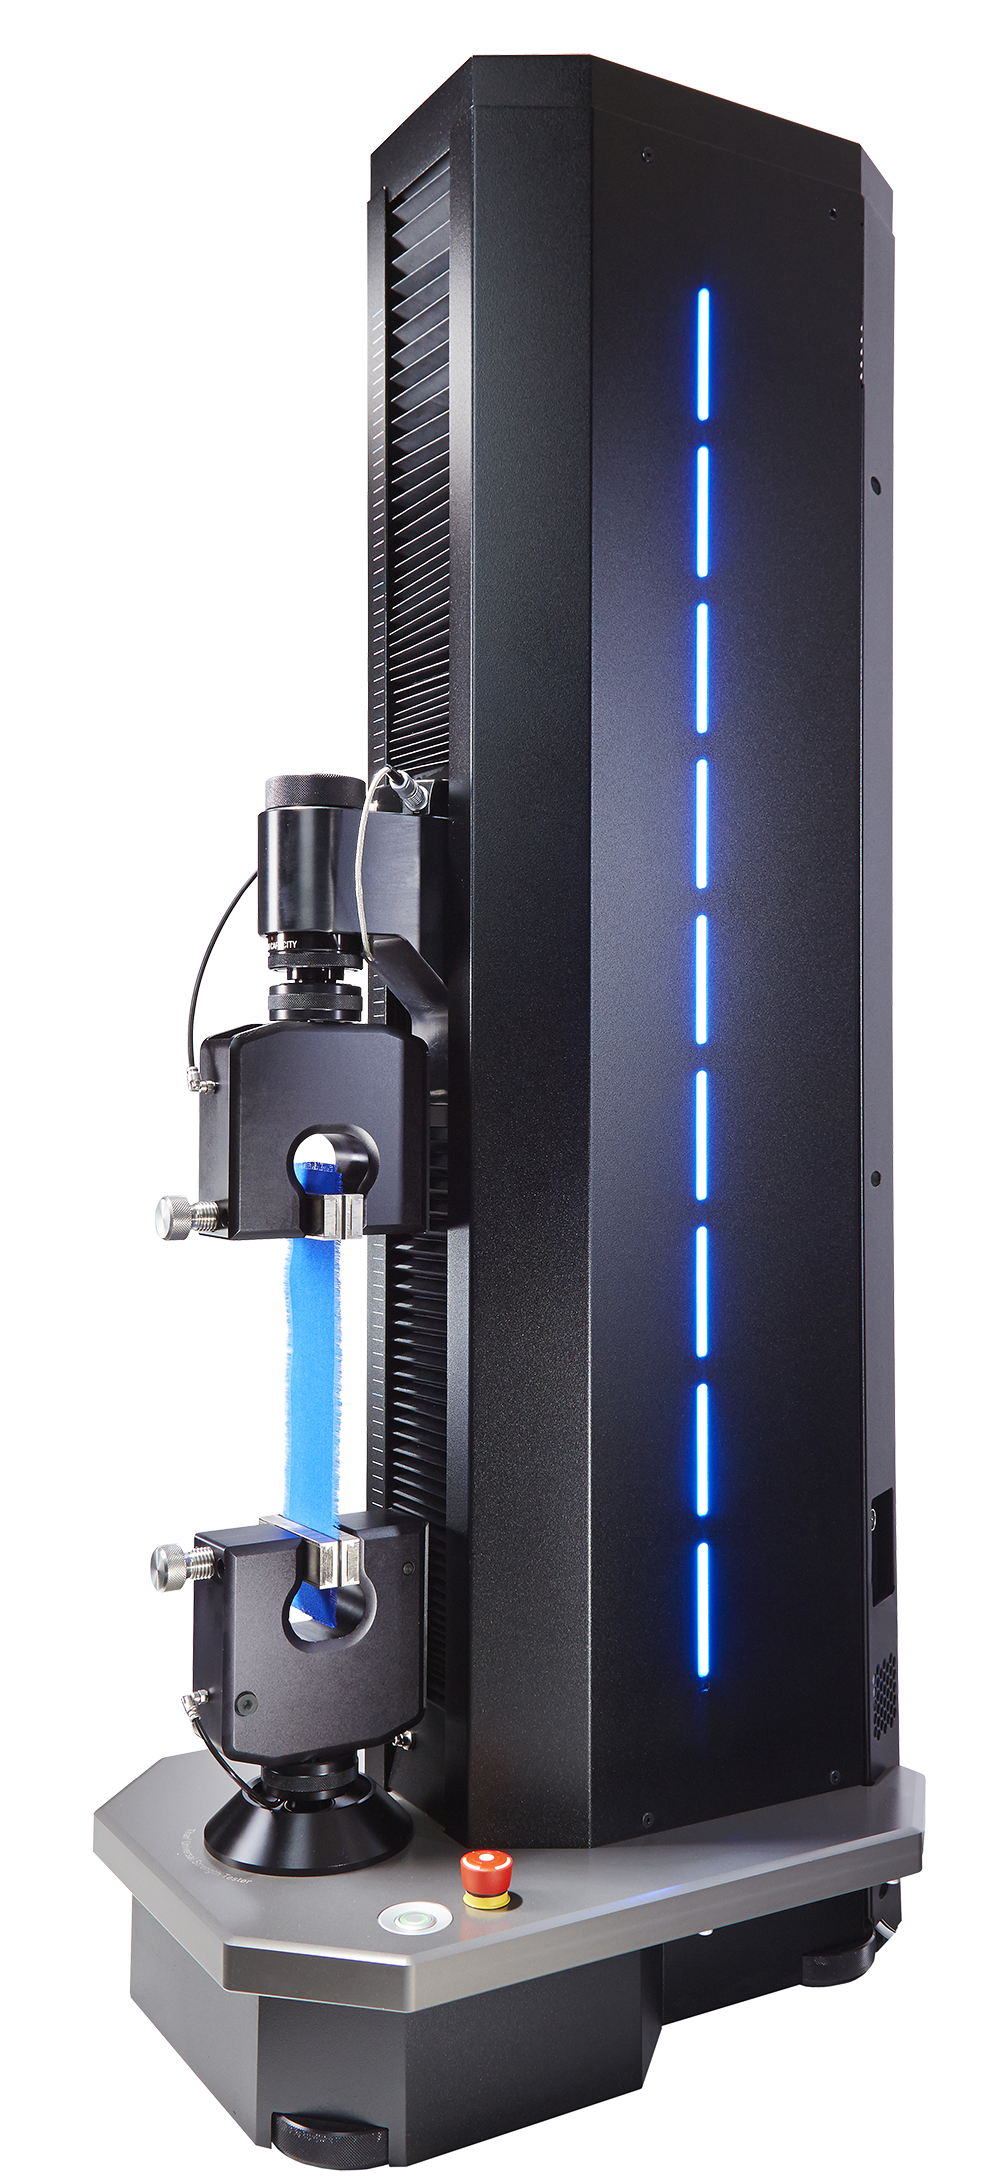 Titan 5 universal testing machine and tensile tester side view